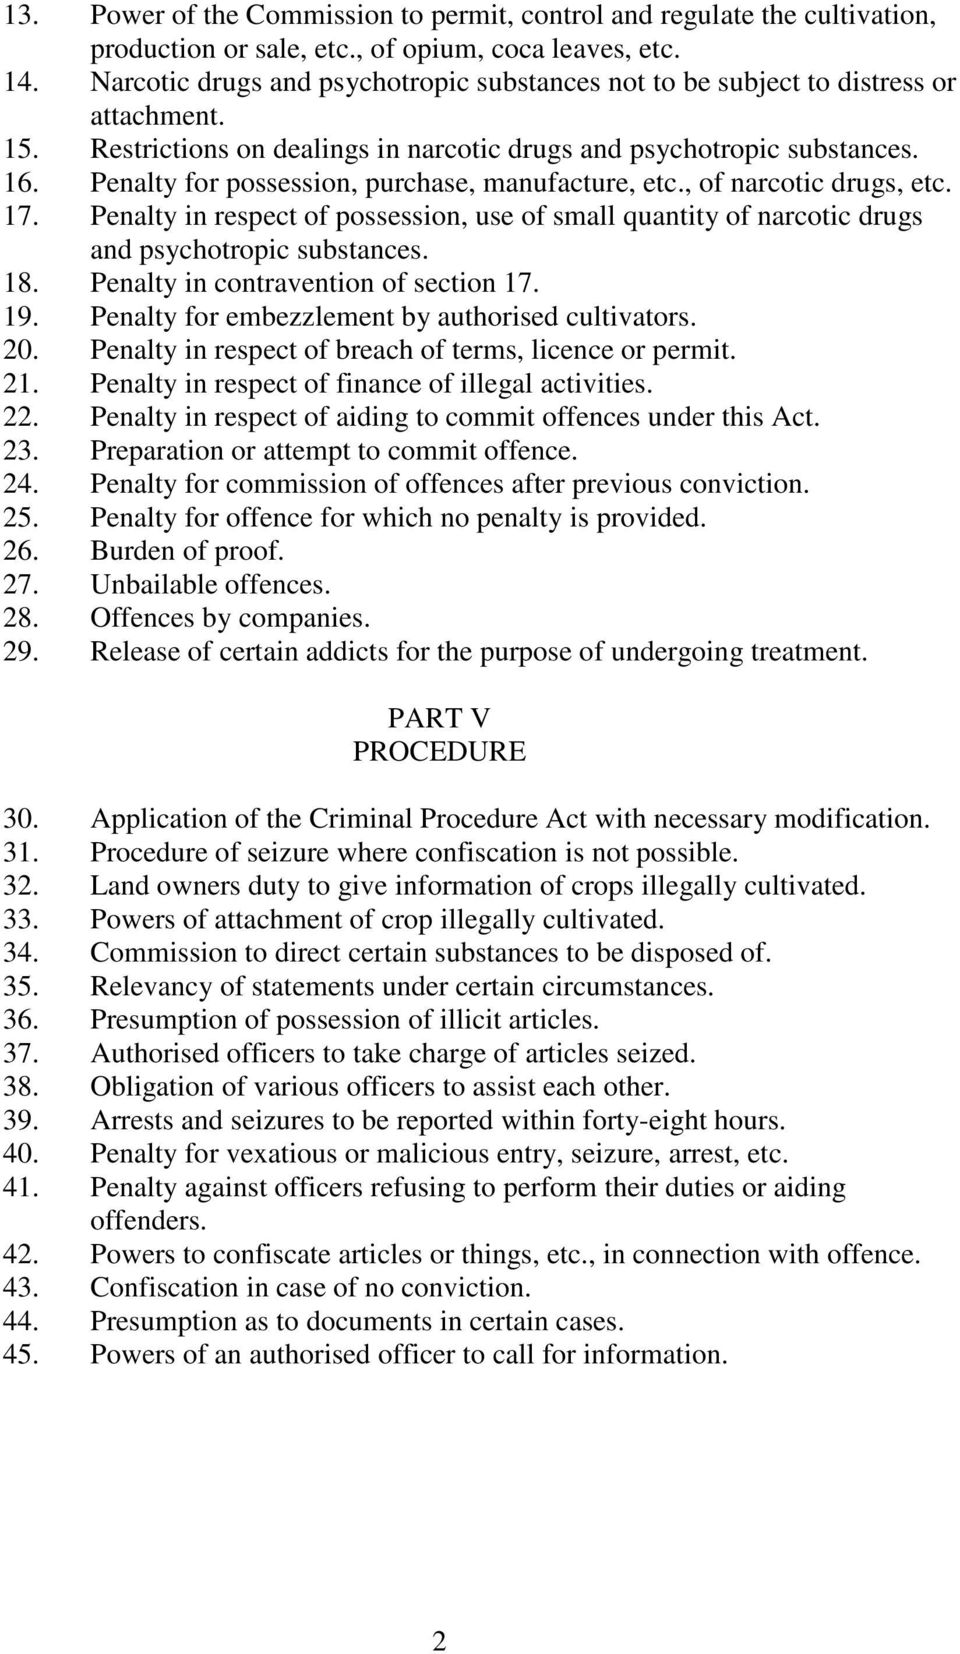 Penalty for possession, purchase, manufacture, etc., of narcotic drugs, etc. 17. Penalty in respect of possession, use of small quantity of narcotic drugs and psychotropic substances. 18.